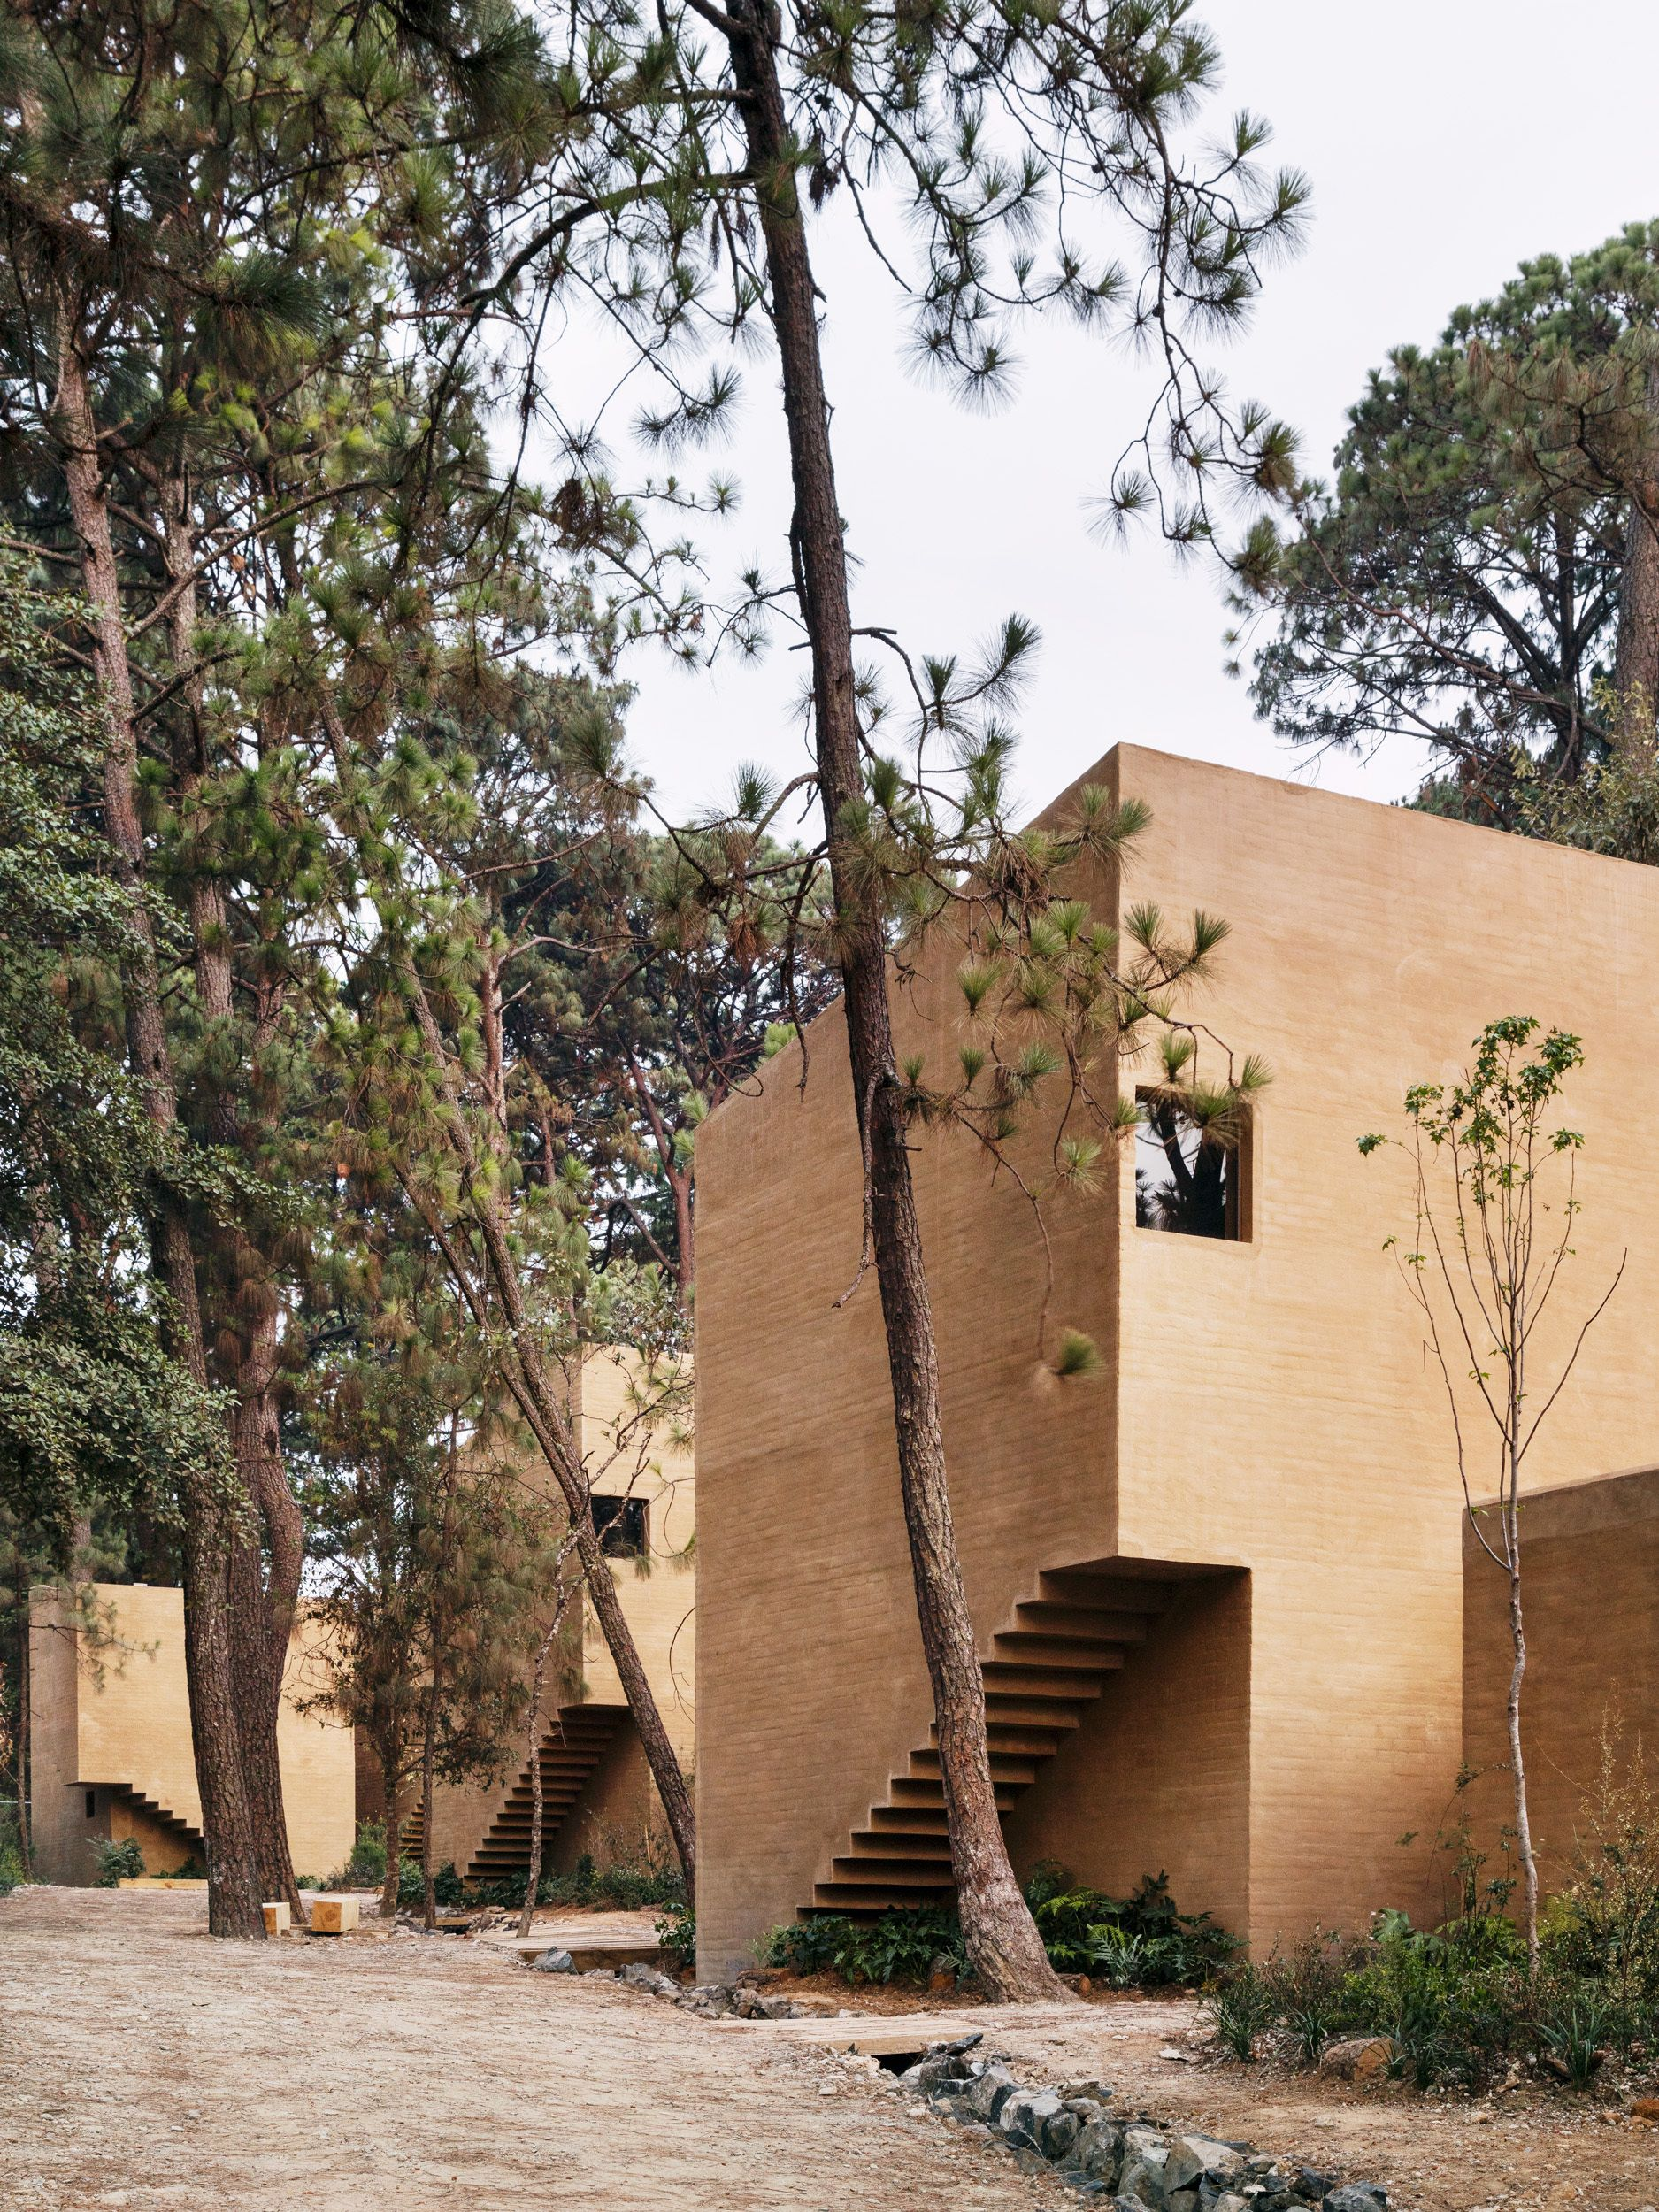 Image 4 of 29 from gallery of Entrepinos Housing / Taller Hector Barroso. Photograph by Rory Gardiner